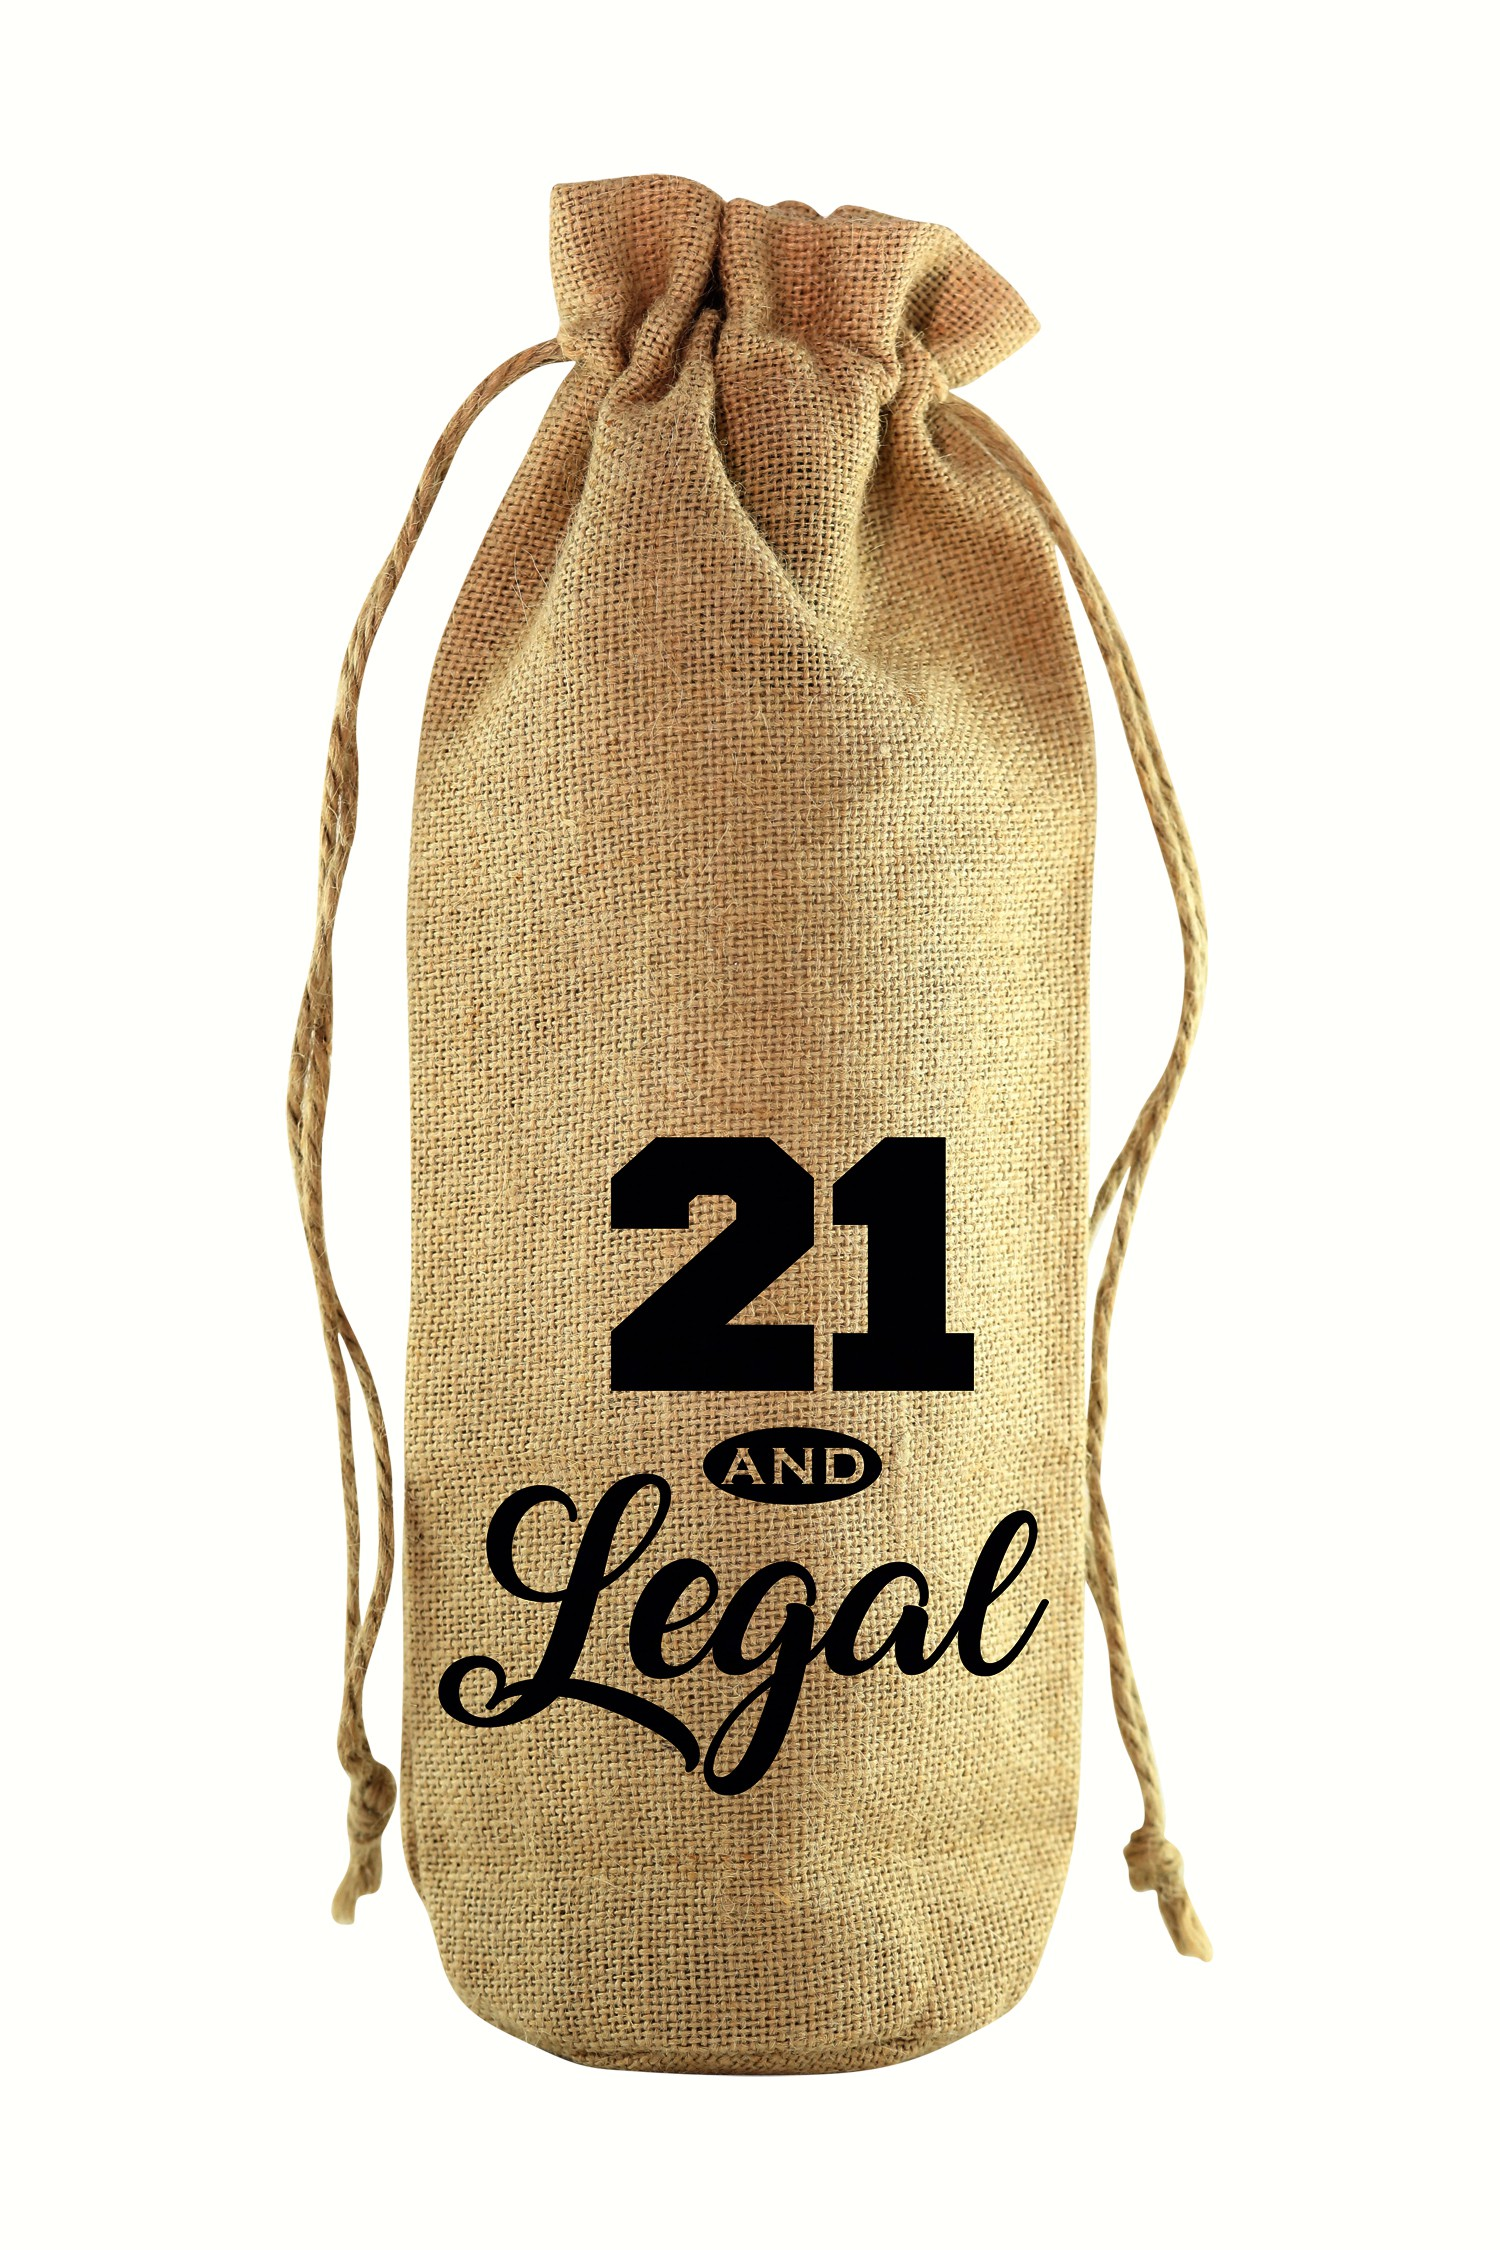 21 & Legal Jute Wine Bottle Sack